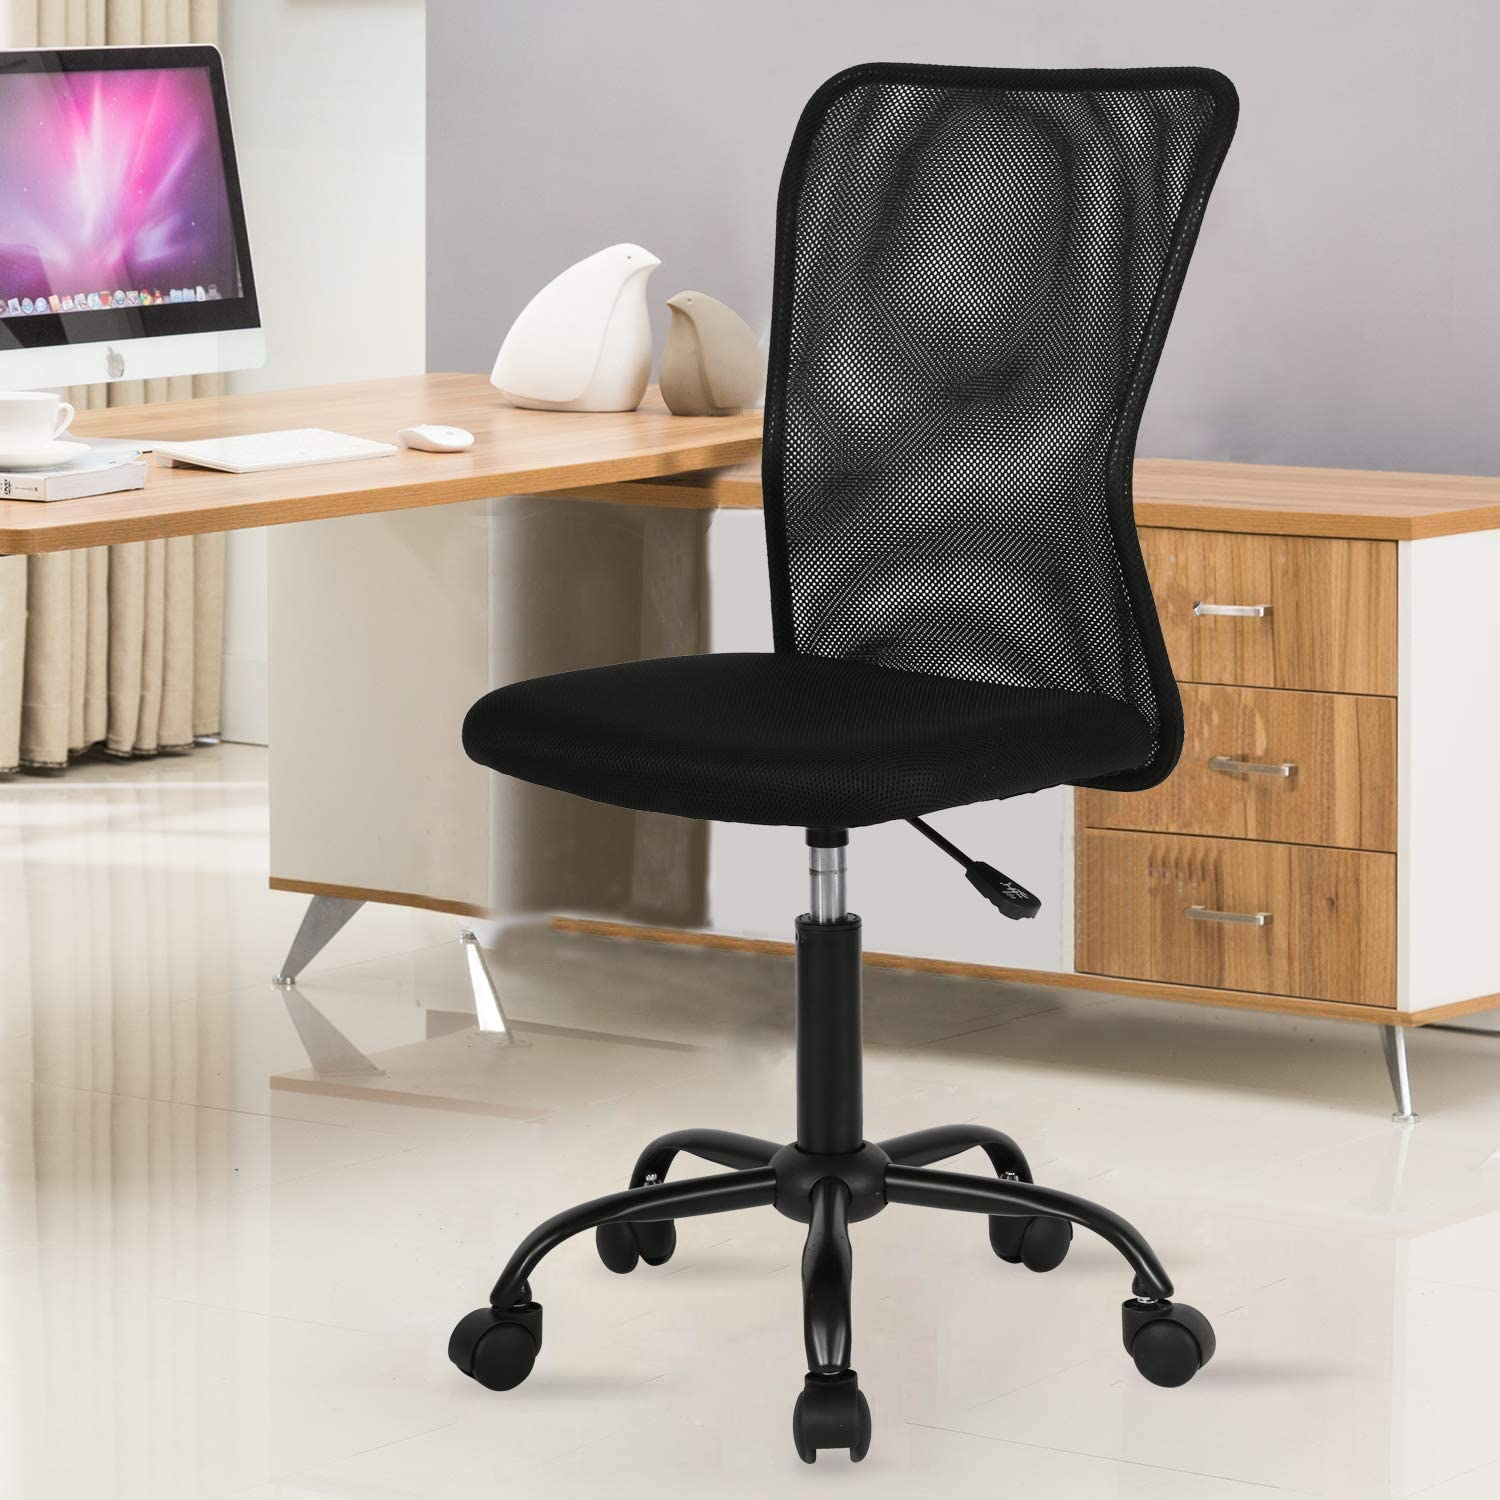 Amazon Com Mesh Office Chair With Lumbar Support Ergonomic Desk Chair Back Support Mesh Computer Chair No Arms Adjustable Height Task Rolling Swivel Chair For Women Men Modern Chair Black Kitchen Dining